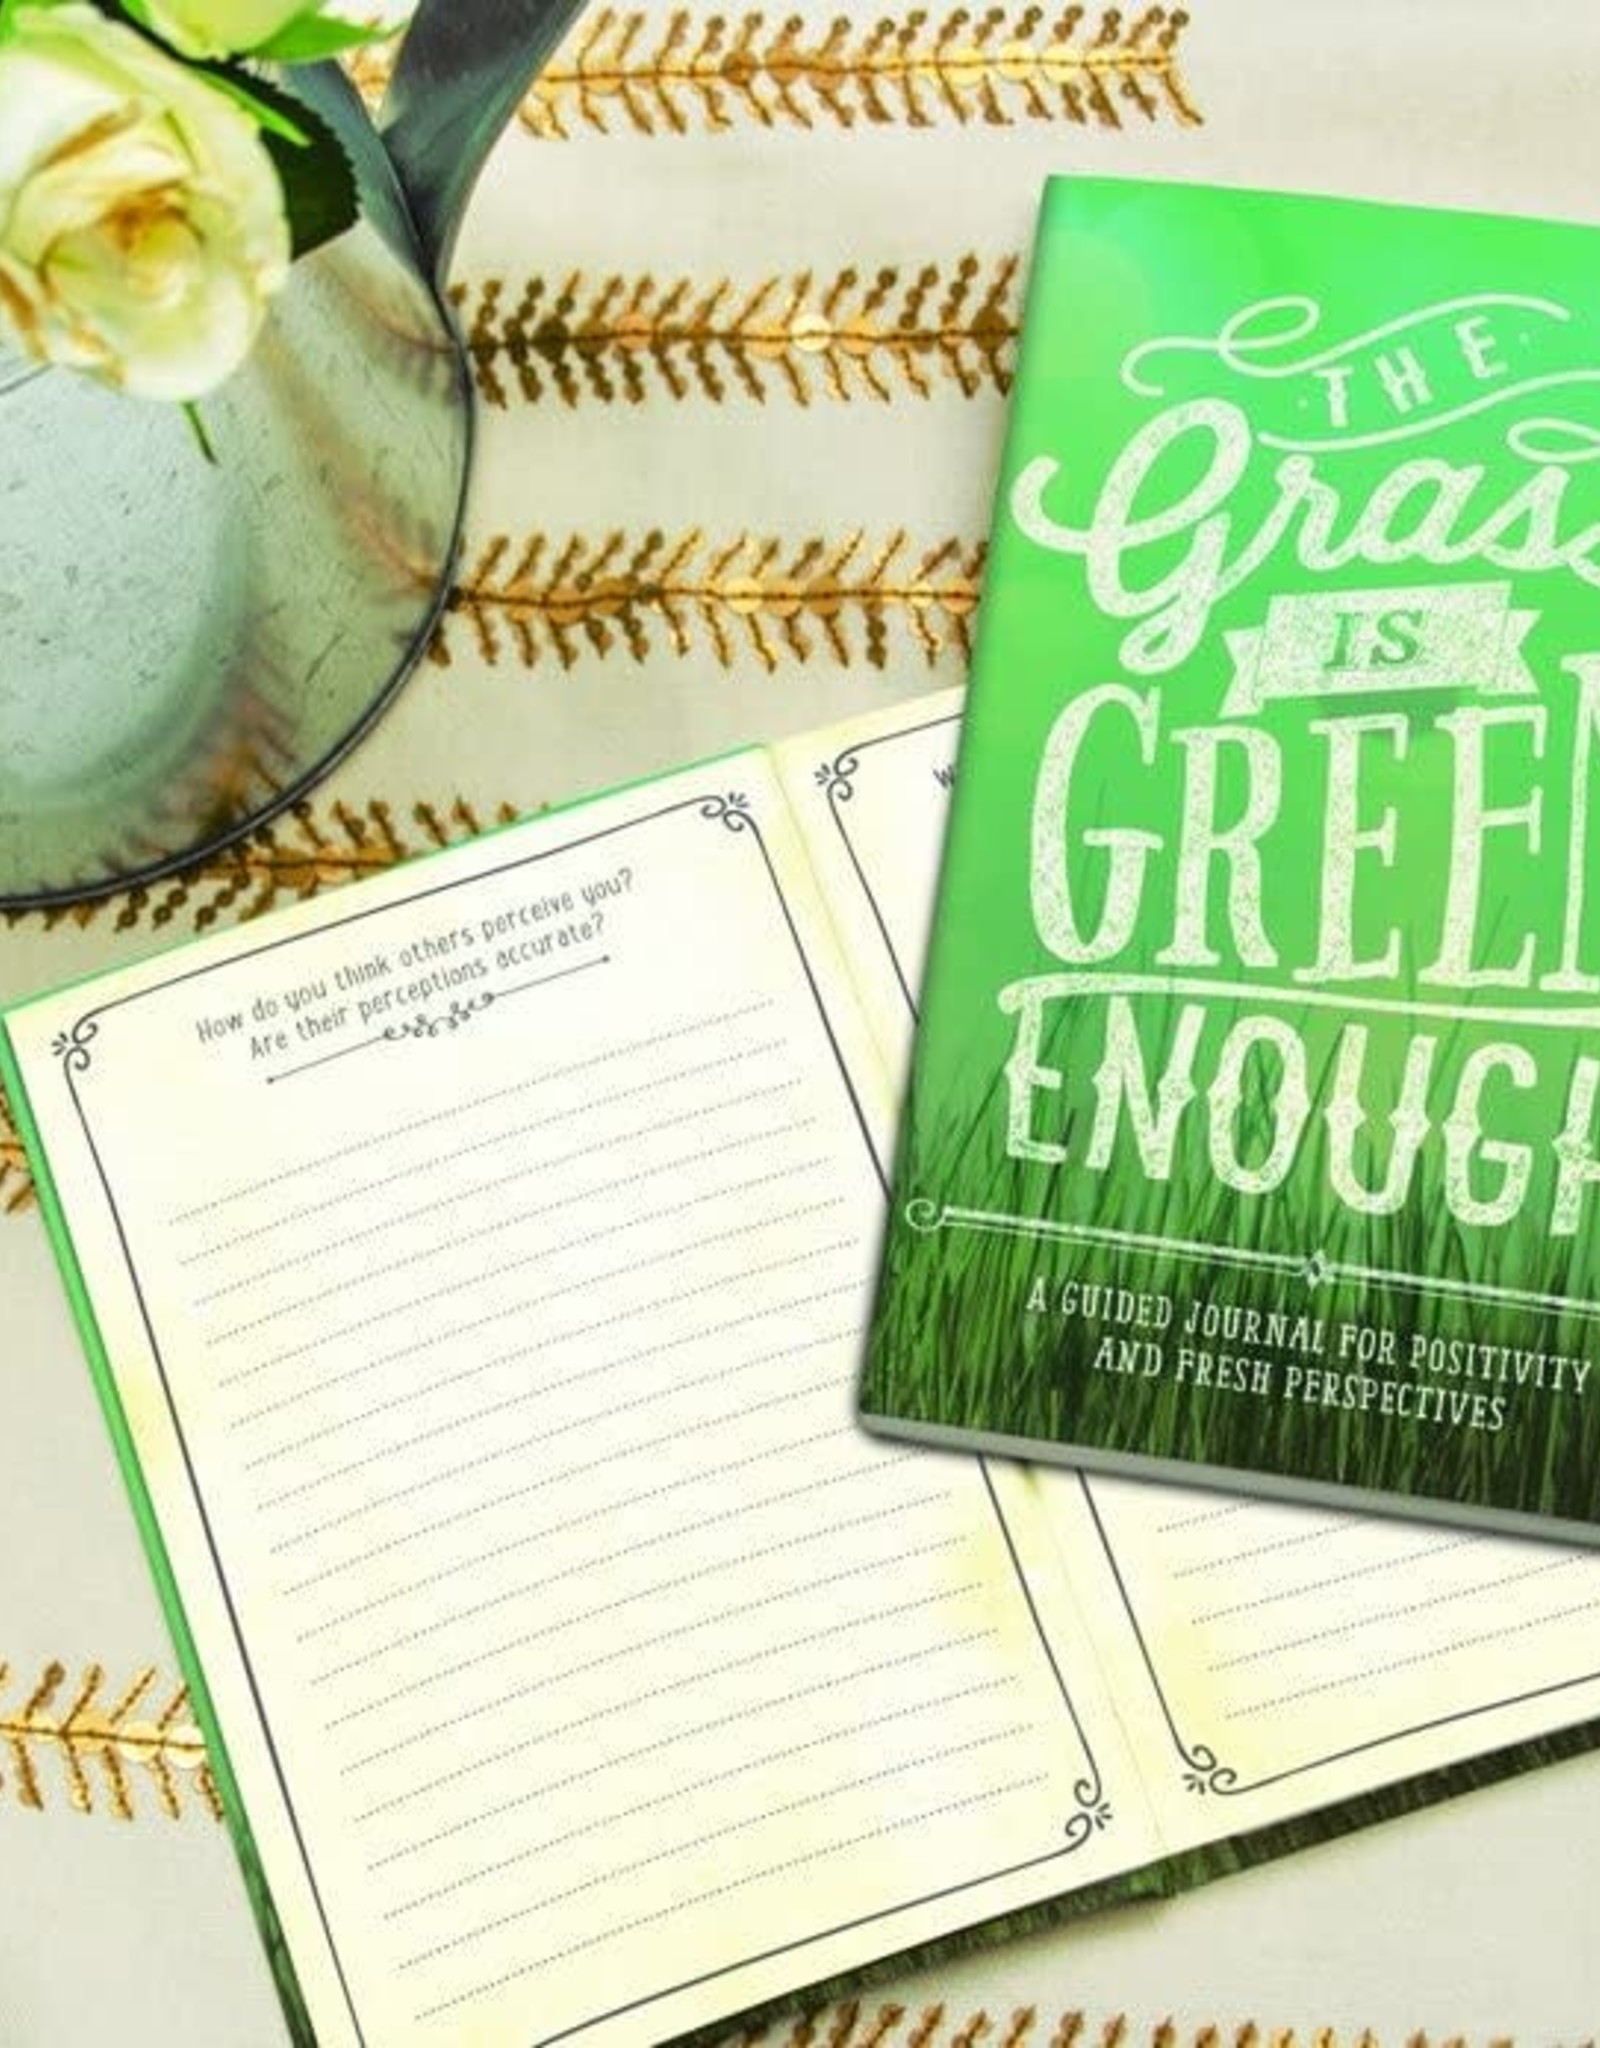 Studio Oh! Studio Oh! Guided Journal The Grass is Green Enough